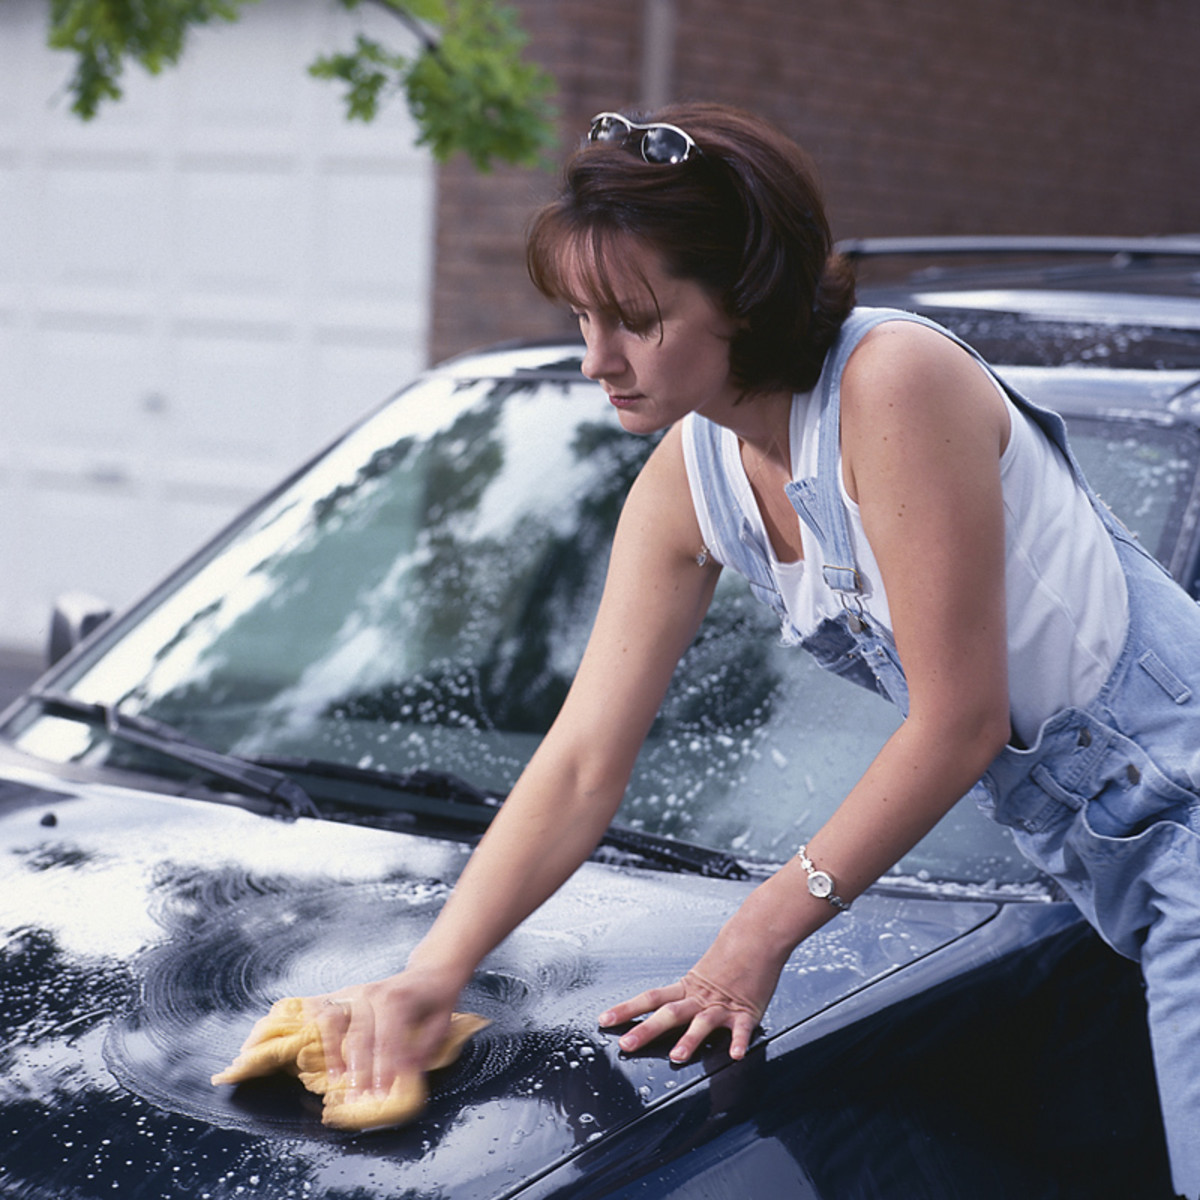 Washing your car the right way.